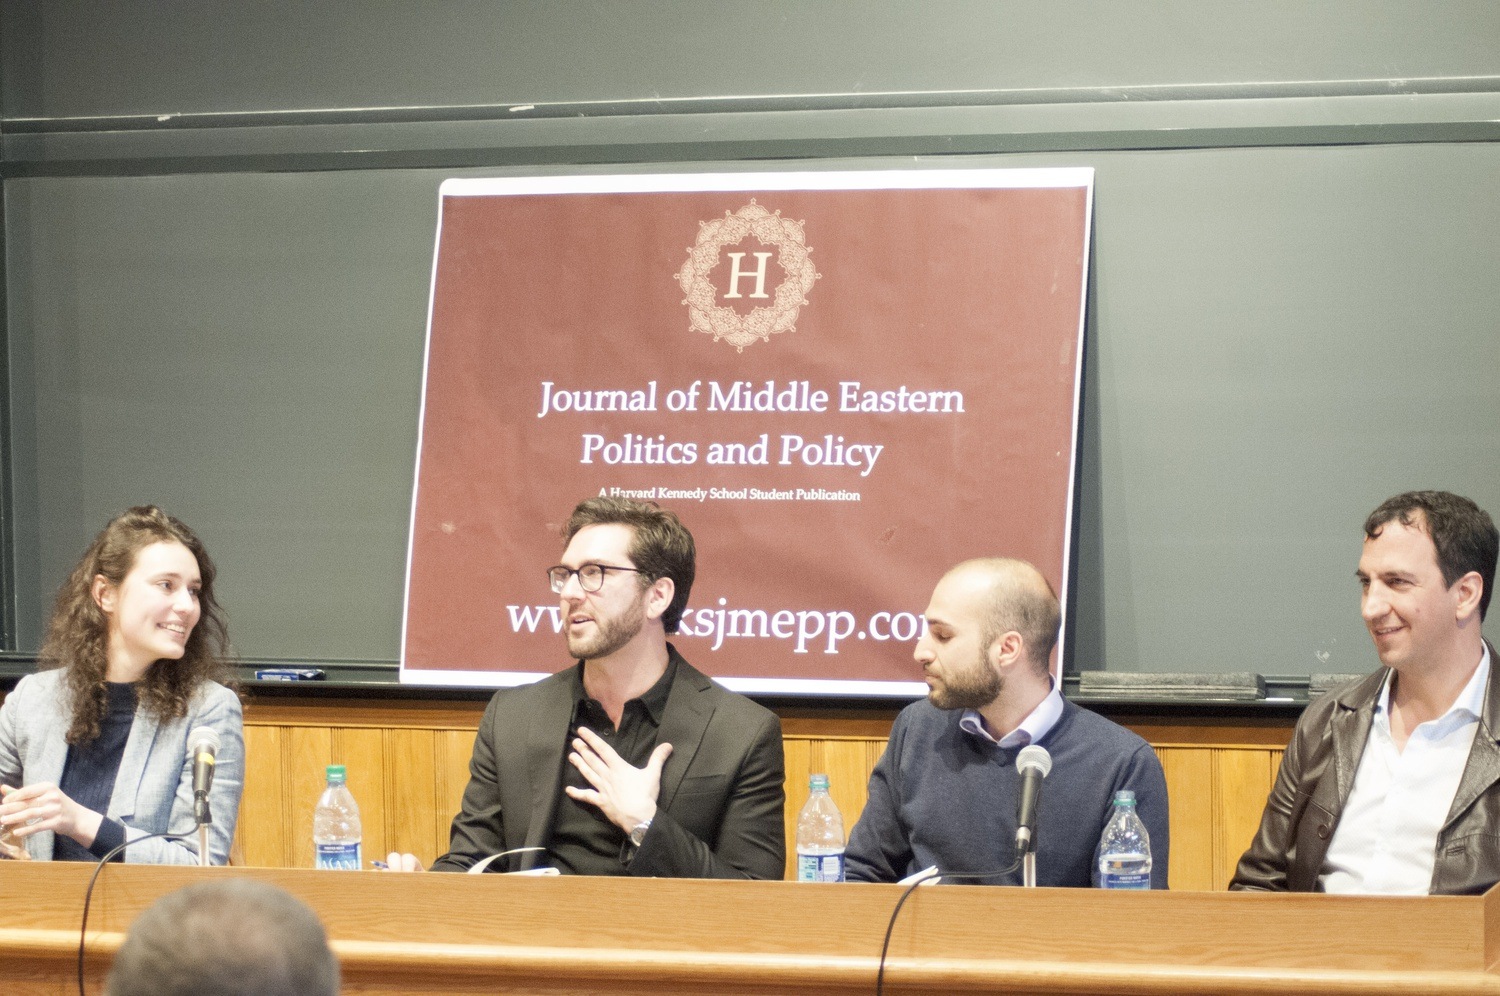 In Sever Hall, four prominent journalists named Michael Petrou, Jonathan Guyer, Izzy Finkel, and Sharaf al-Hourani spoke about the moral responsibiliies and challenges of reporting on Middle East news.